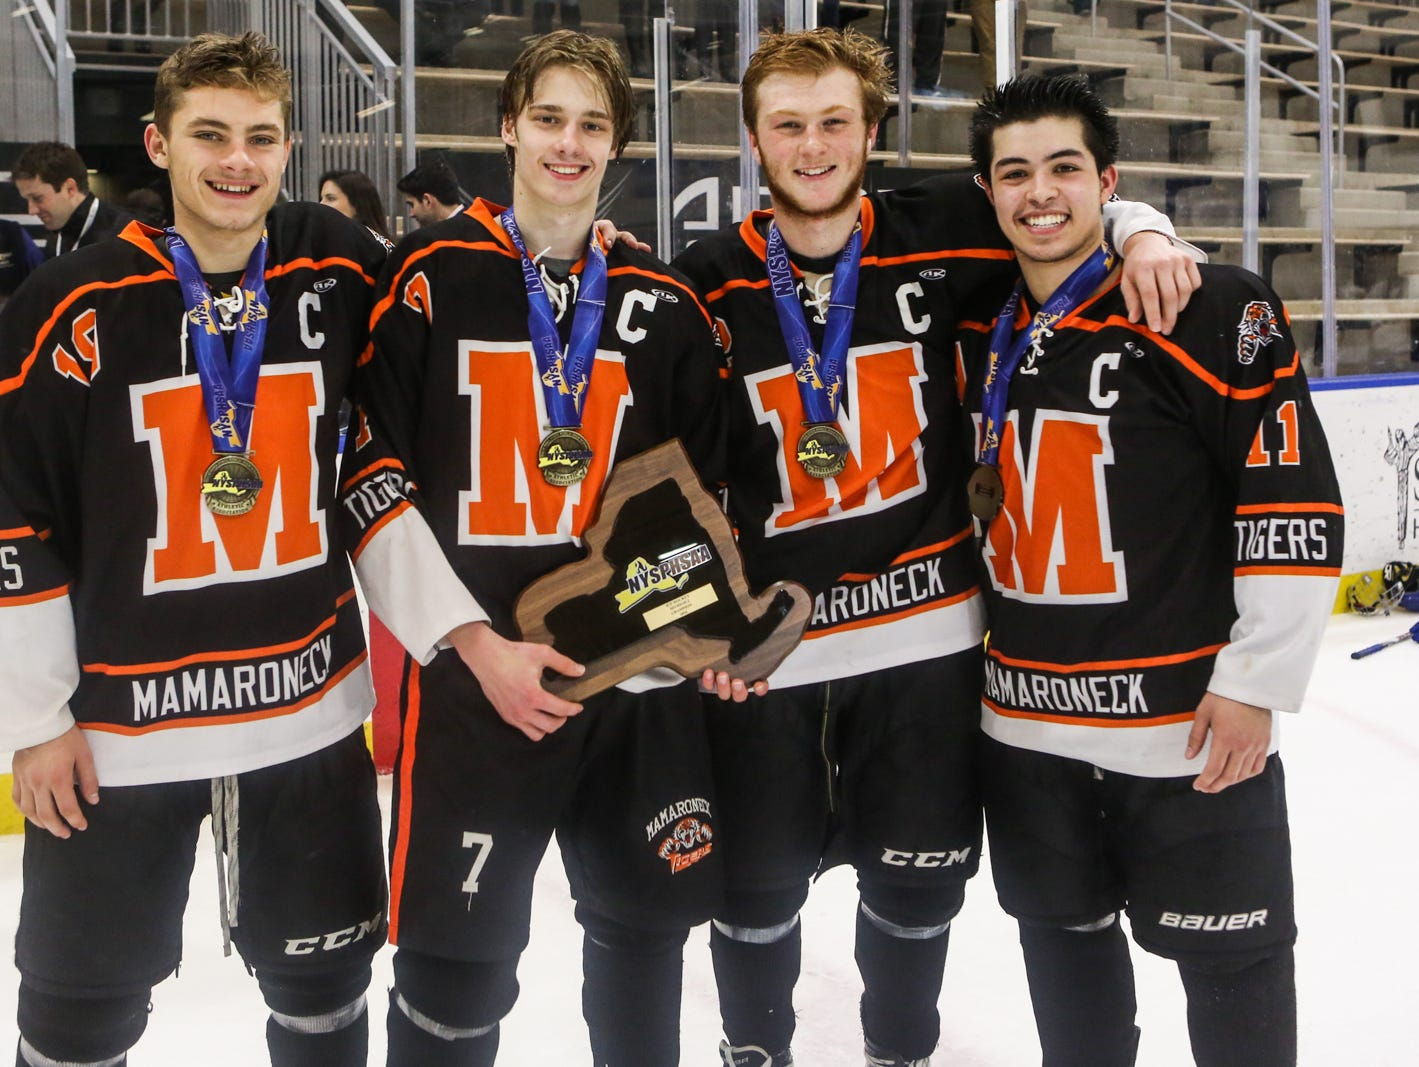 Mamaroneck's Will Kirk (19), Alex Ewald (7), Chris Conley (22), Will Arbo (11) take a group photograph with the state plaque after winning the game. Mamaroneck defeated West Genesee 1-0 and won the NYSPHSAA Division 1 HarborCenter in Buffalo, NY. Nick Serrata - For The Journal News